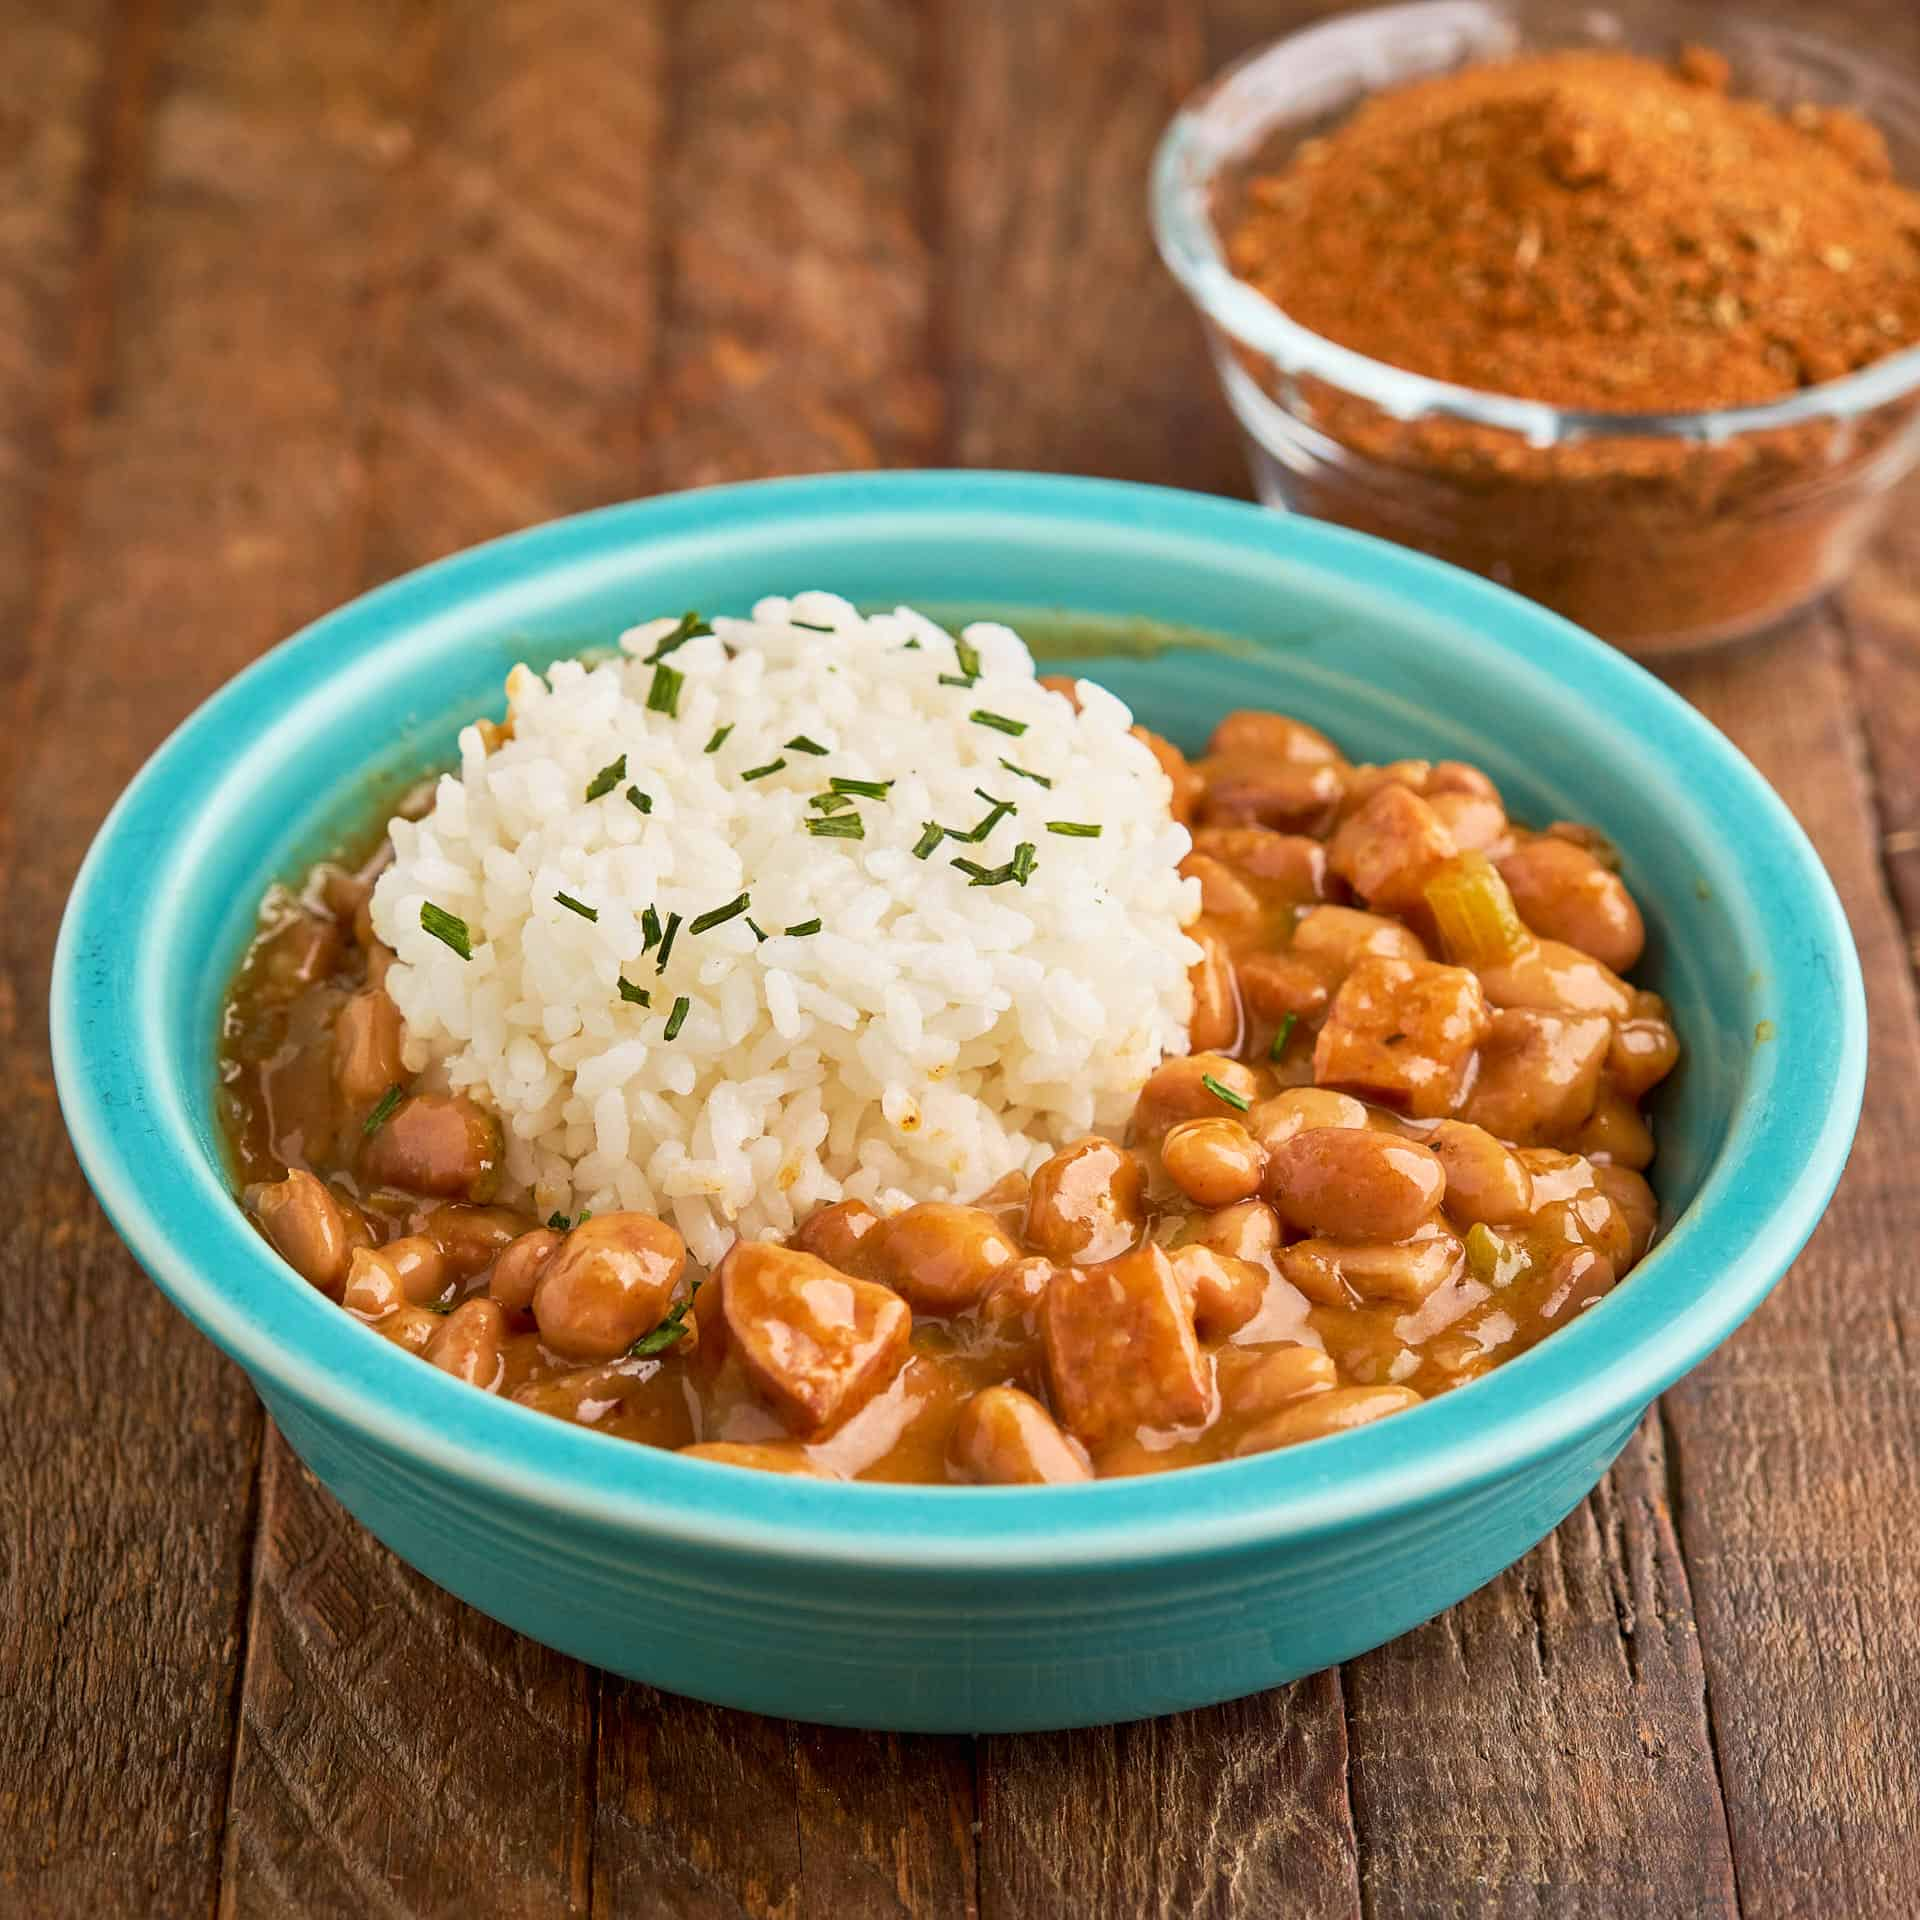 A bowl of Cajun pinto beans and rice, with a smaller bowl of spices behind them